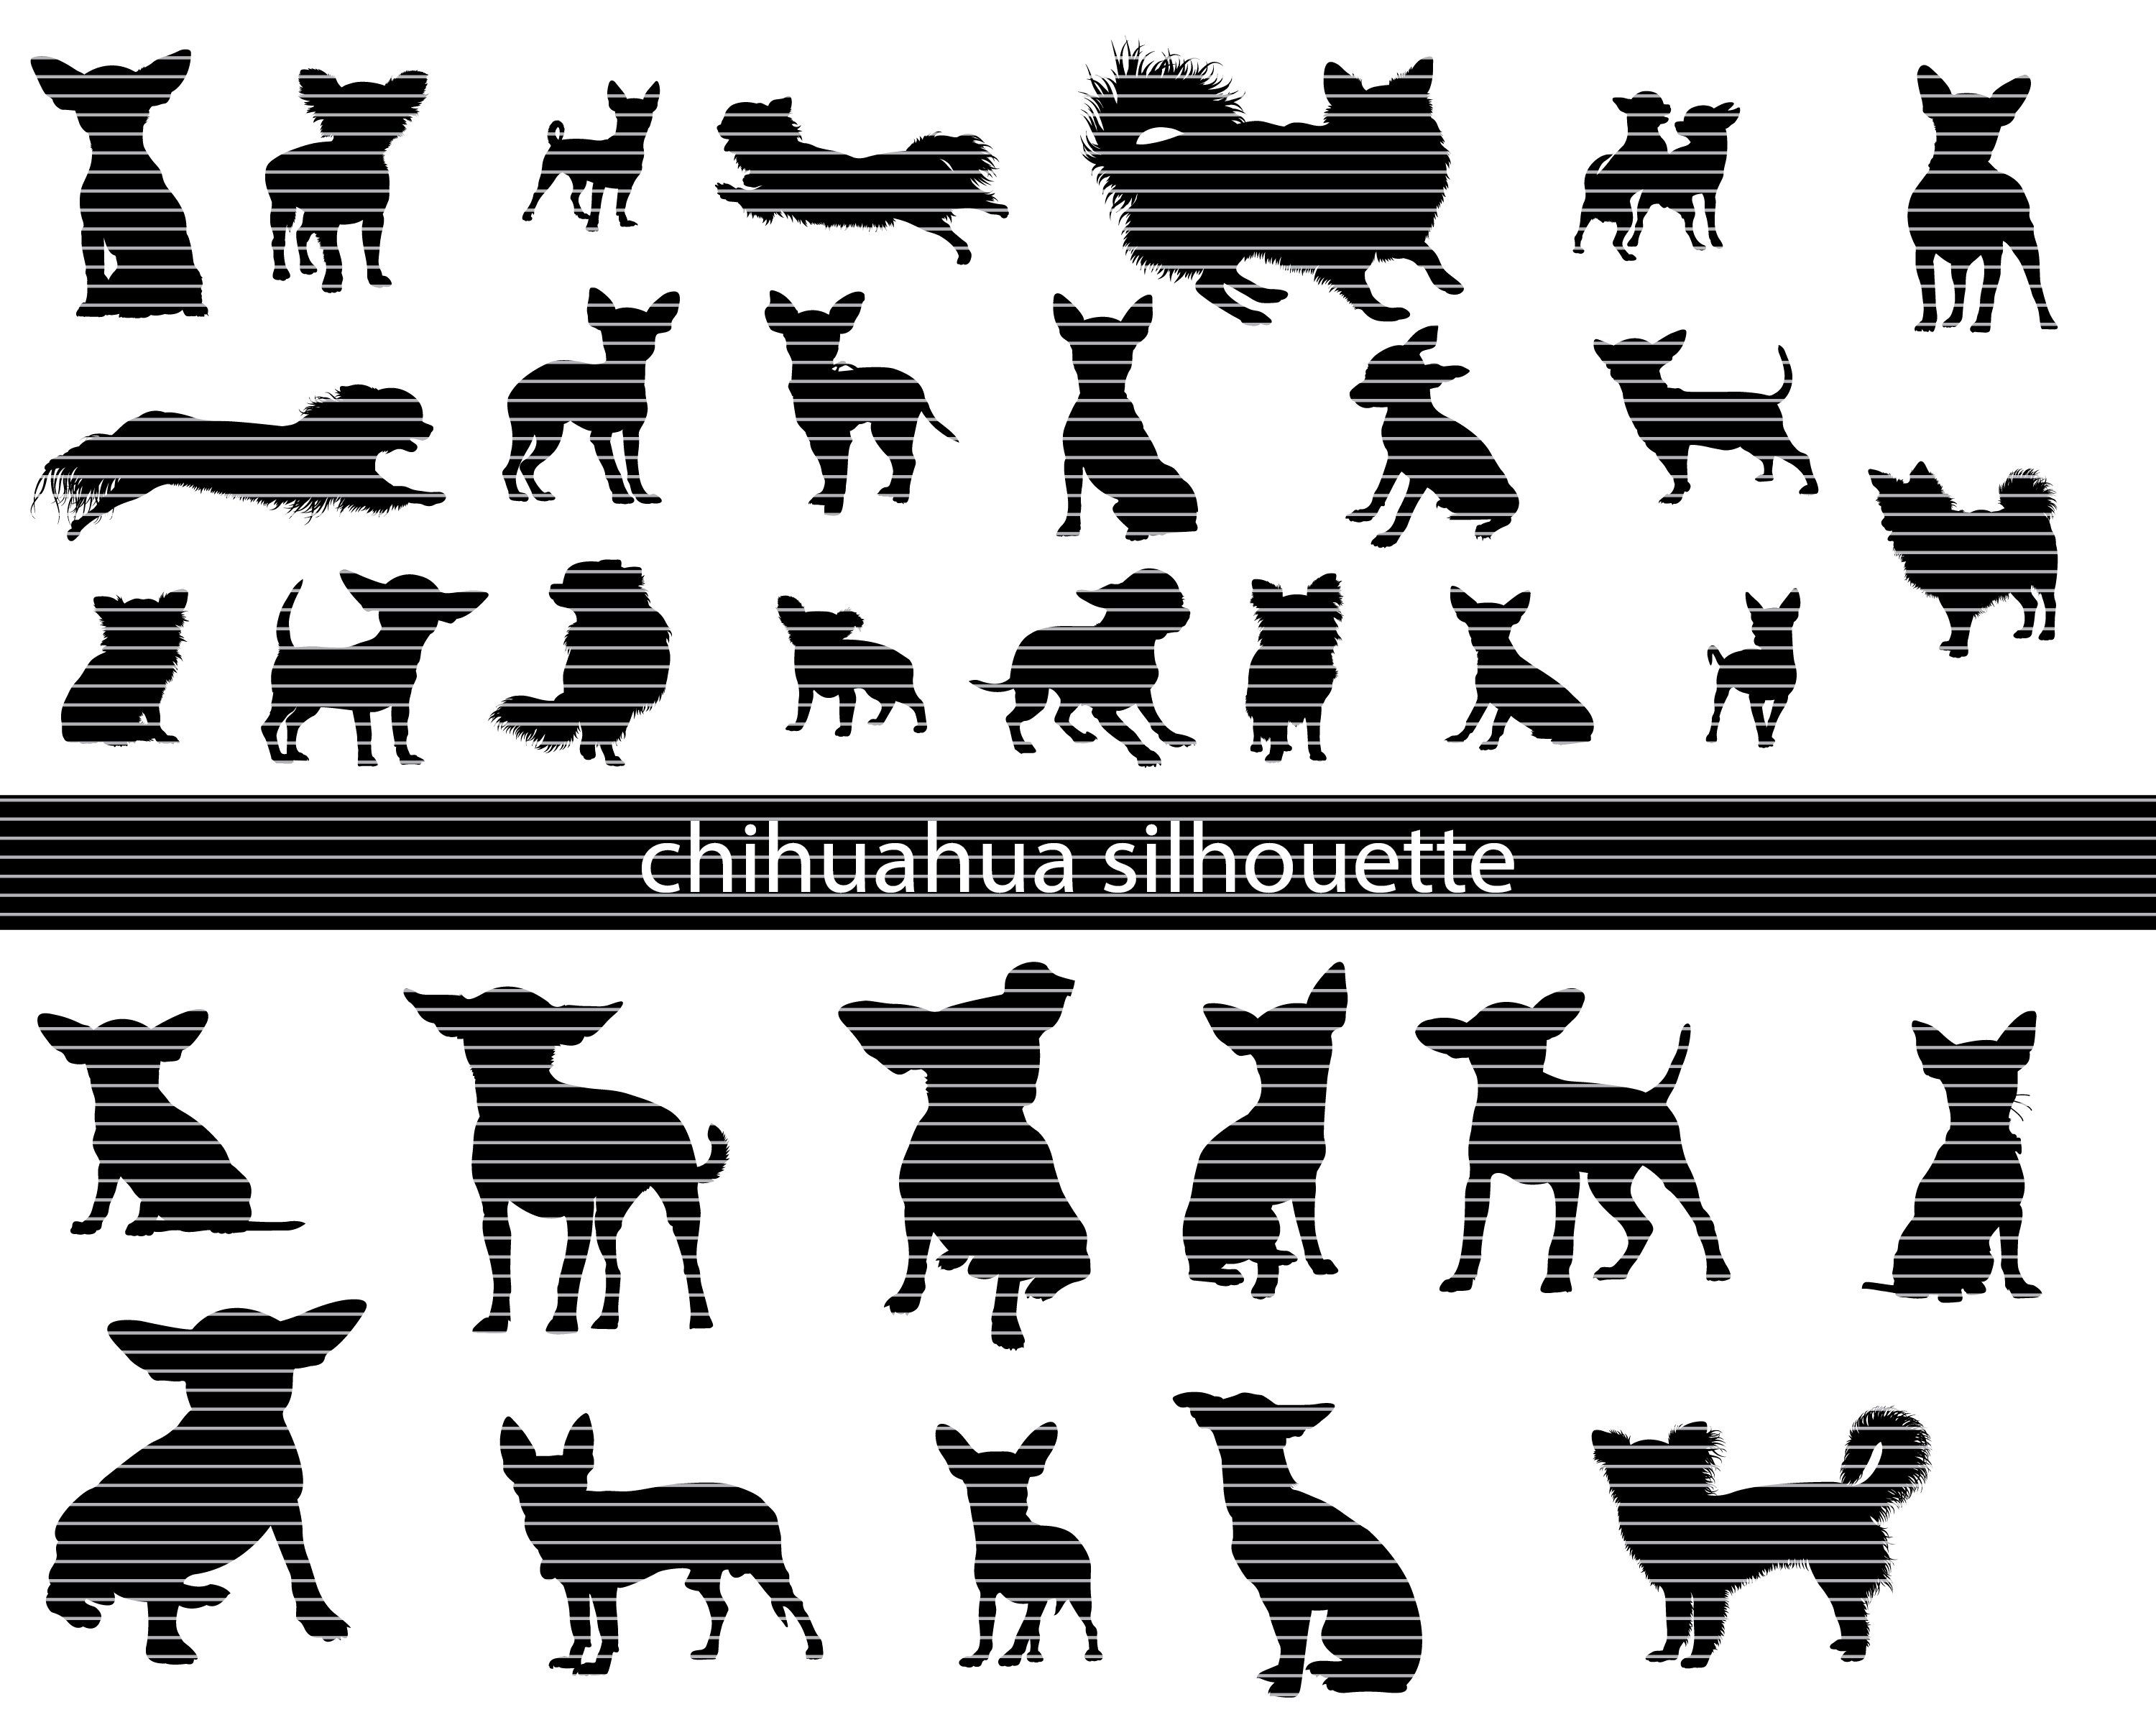 Chihuahua silhouette Svg Bundle in 2020 Silhouette svg